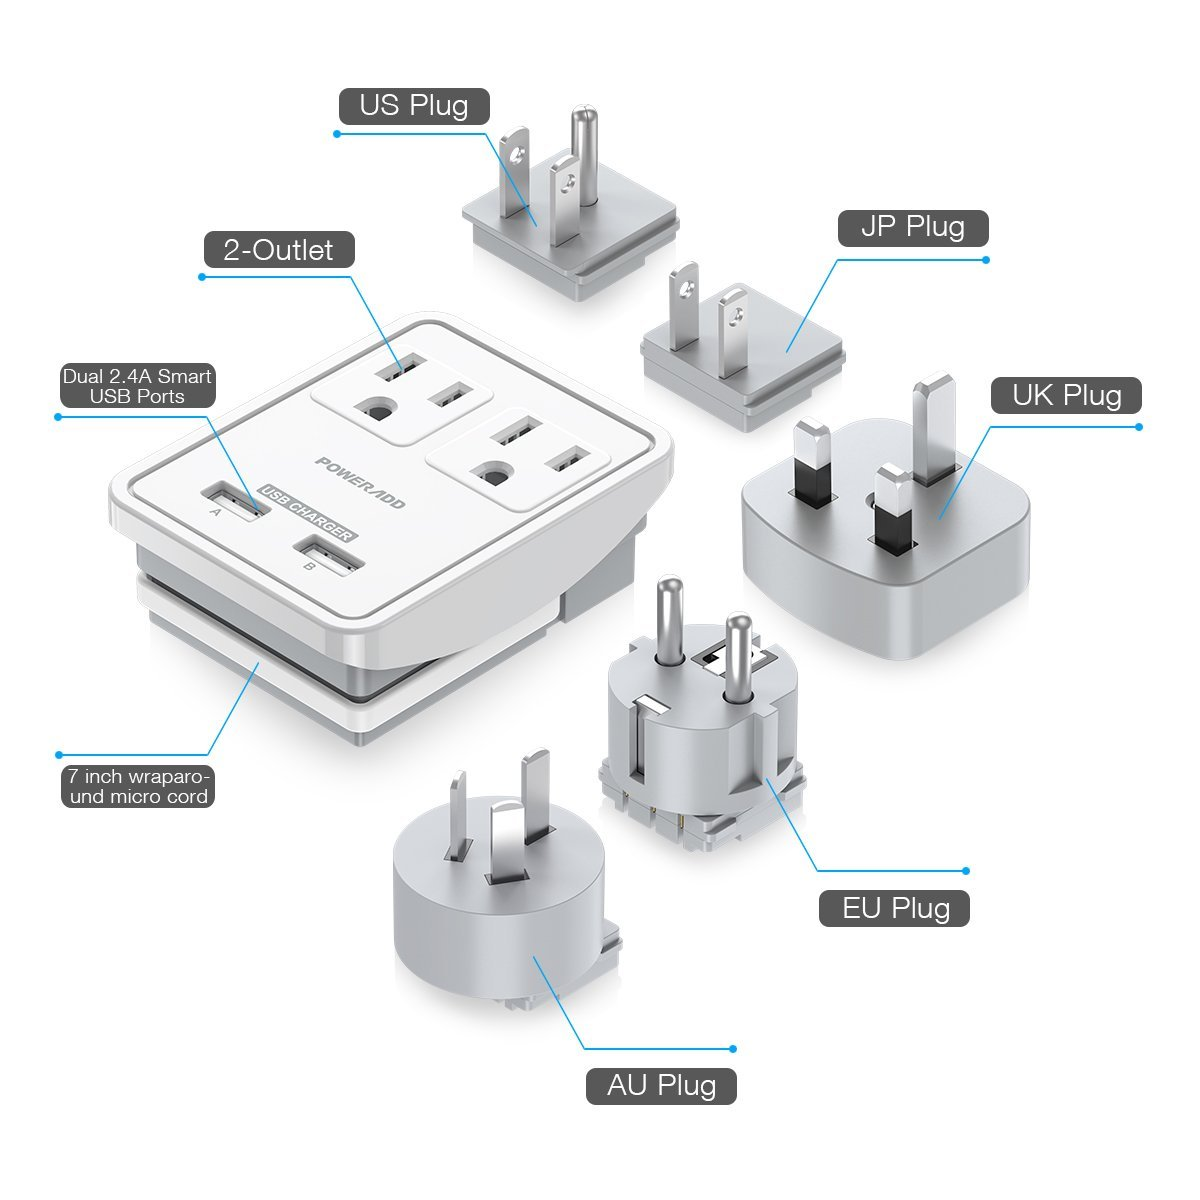 Poweradd Travel Power Adapter Kits Dual 24a Usb Ports Micro Charger Wiring Diagram 2 Outlets Wall With Worldwide Plugs For Uk Us Au Europe Asia